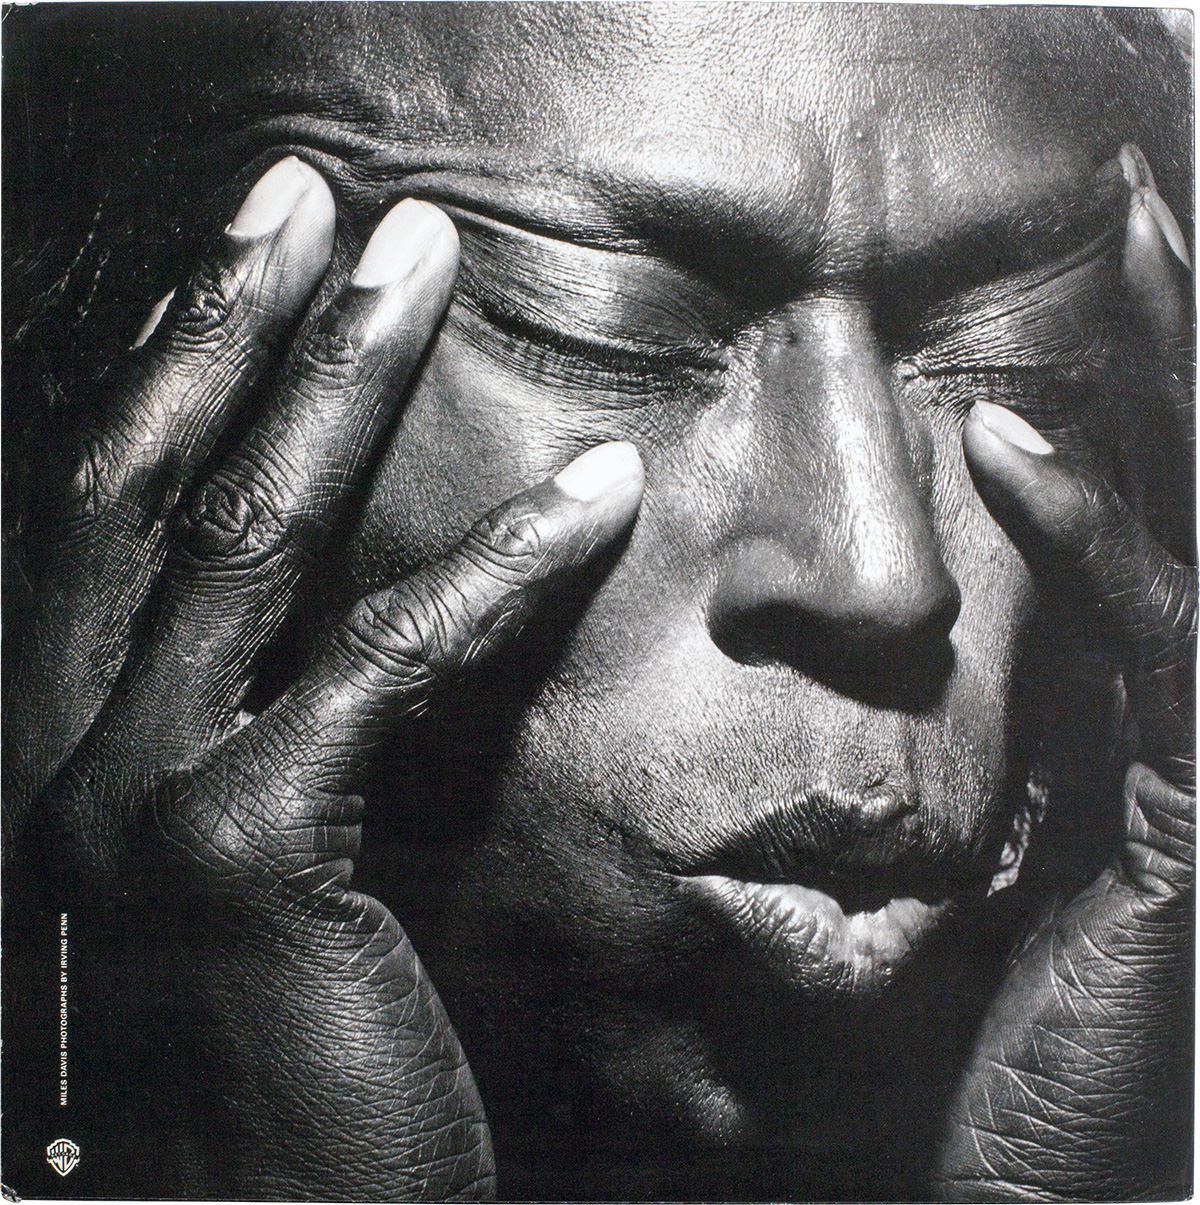 Miles Davis, Tutu, Warner Bros. Records, 1986. Fotó © Irving Penn